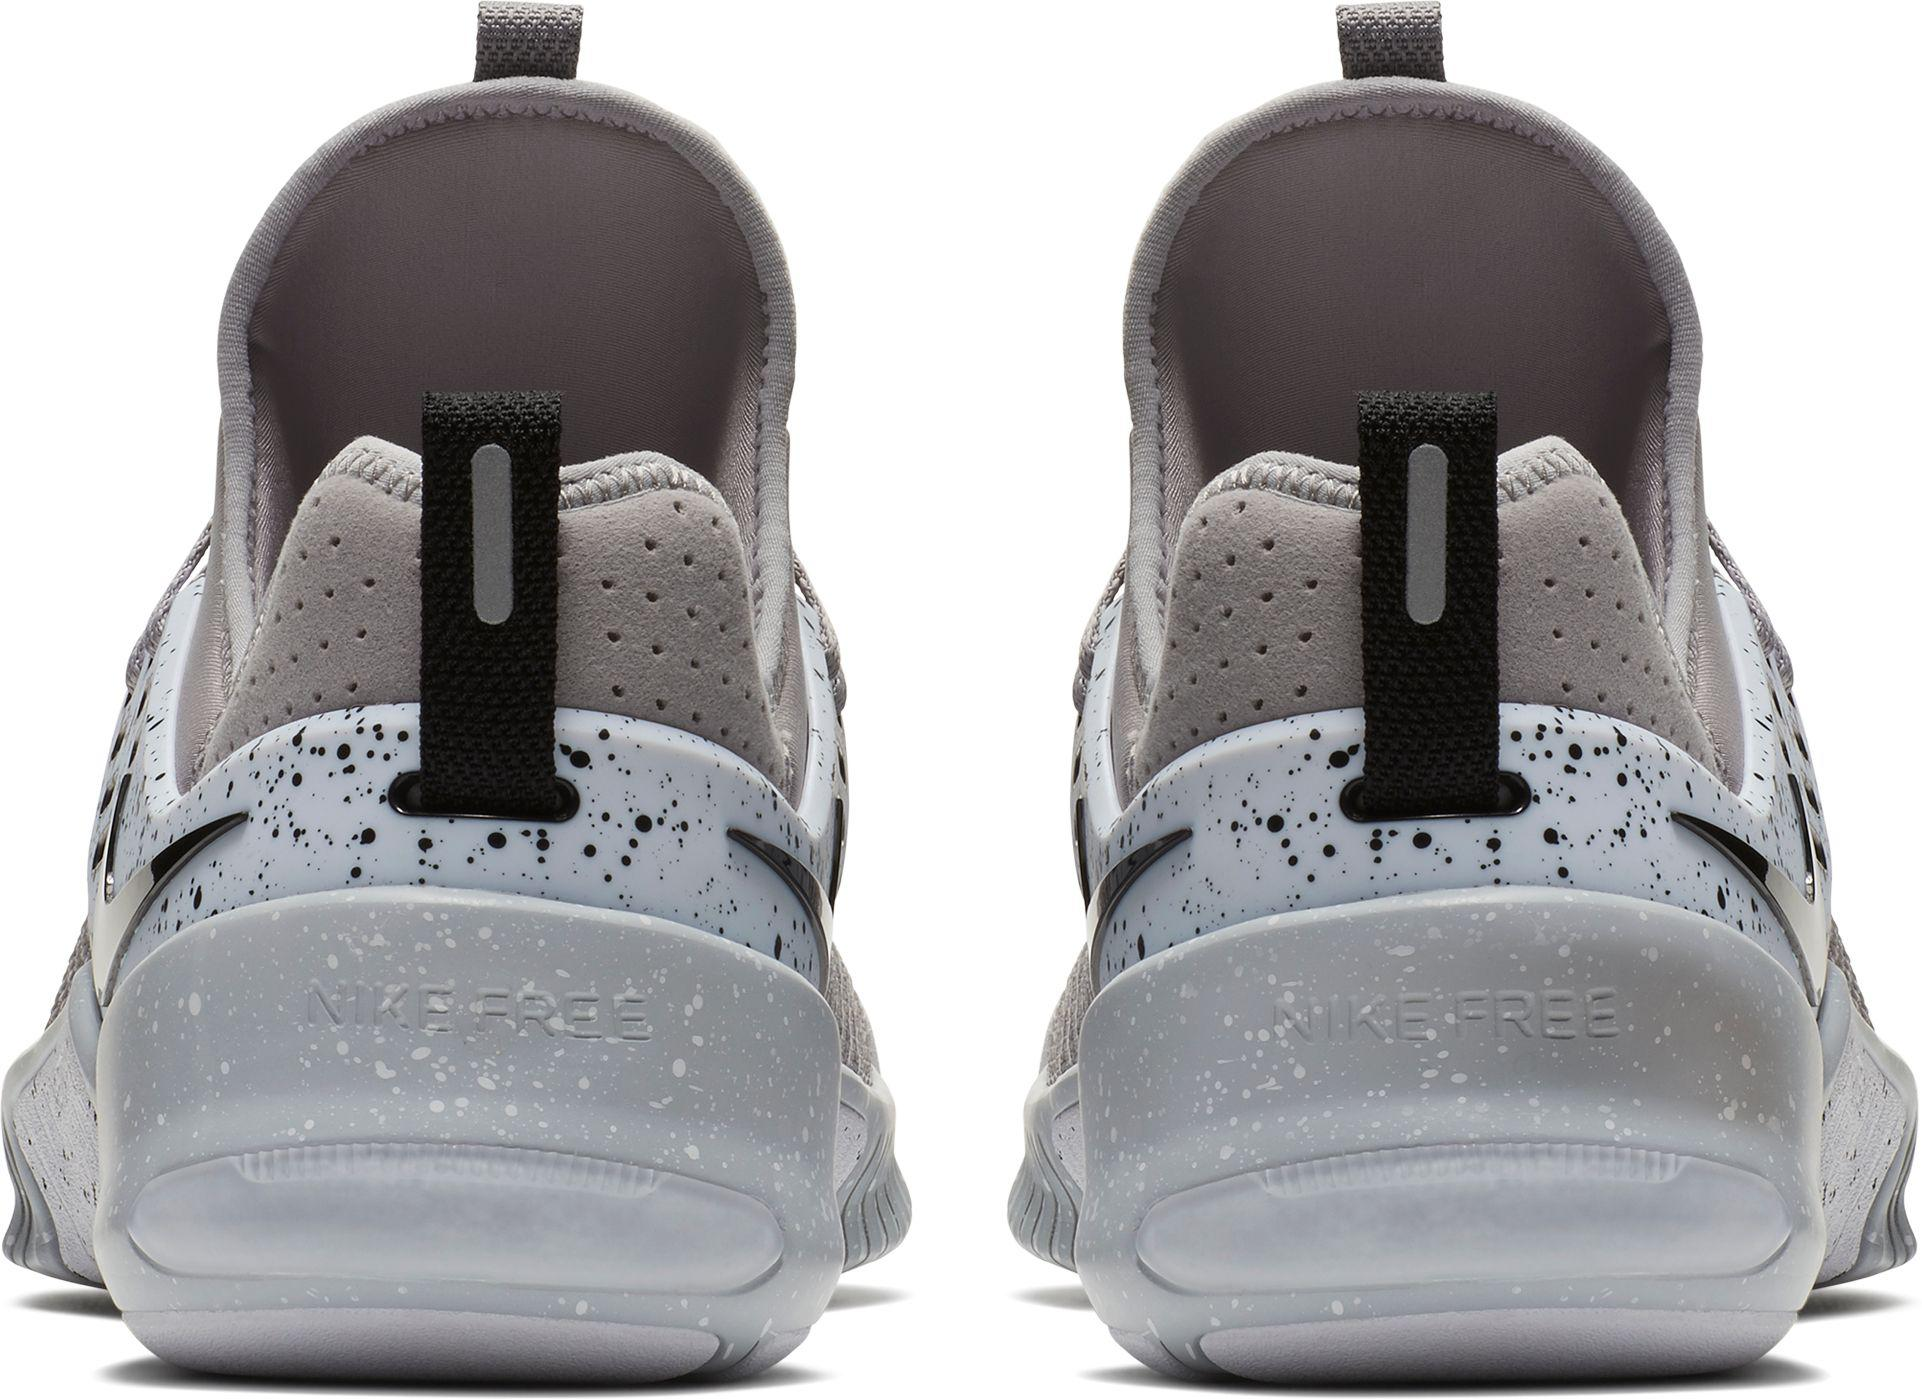 ef9f287e846 Lyst - Nike Free X Metcon Training Shoes in Gray for Men